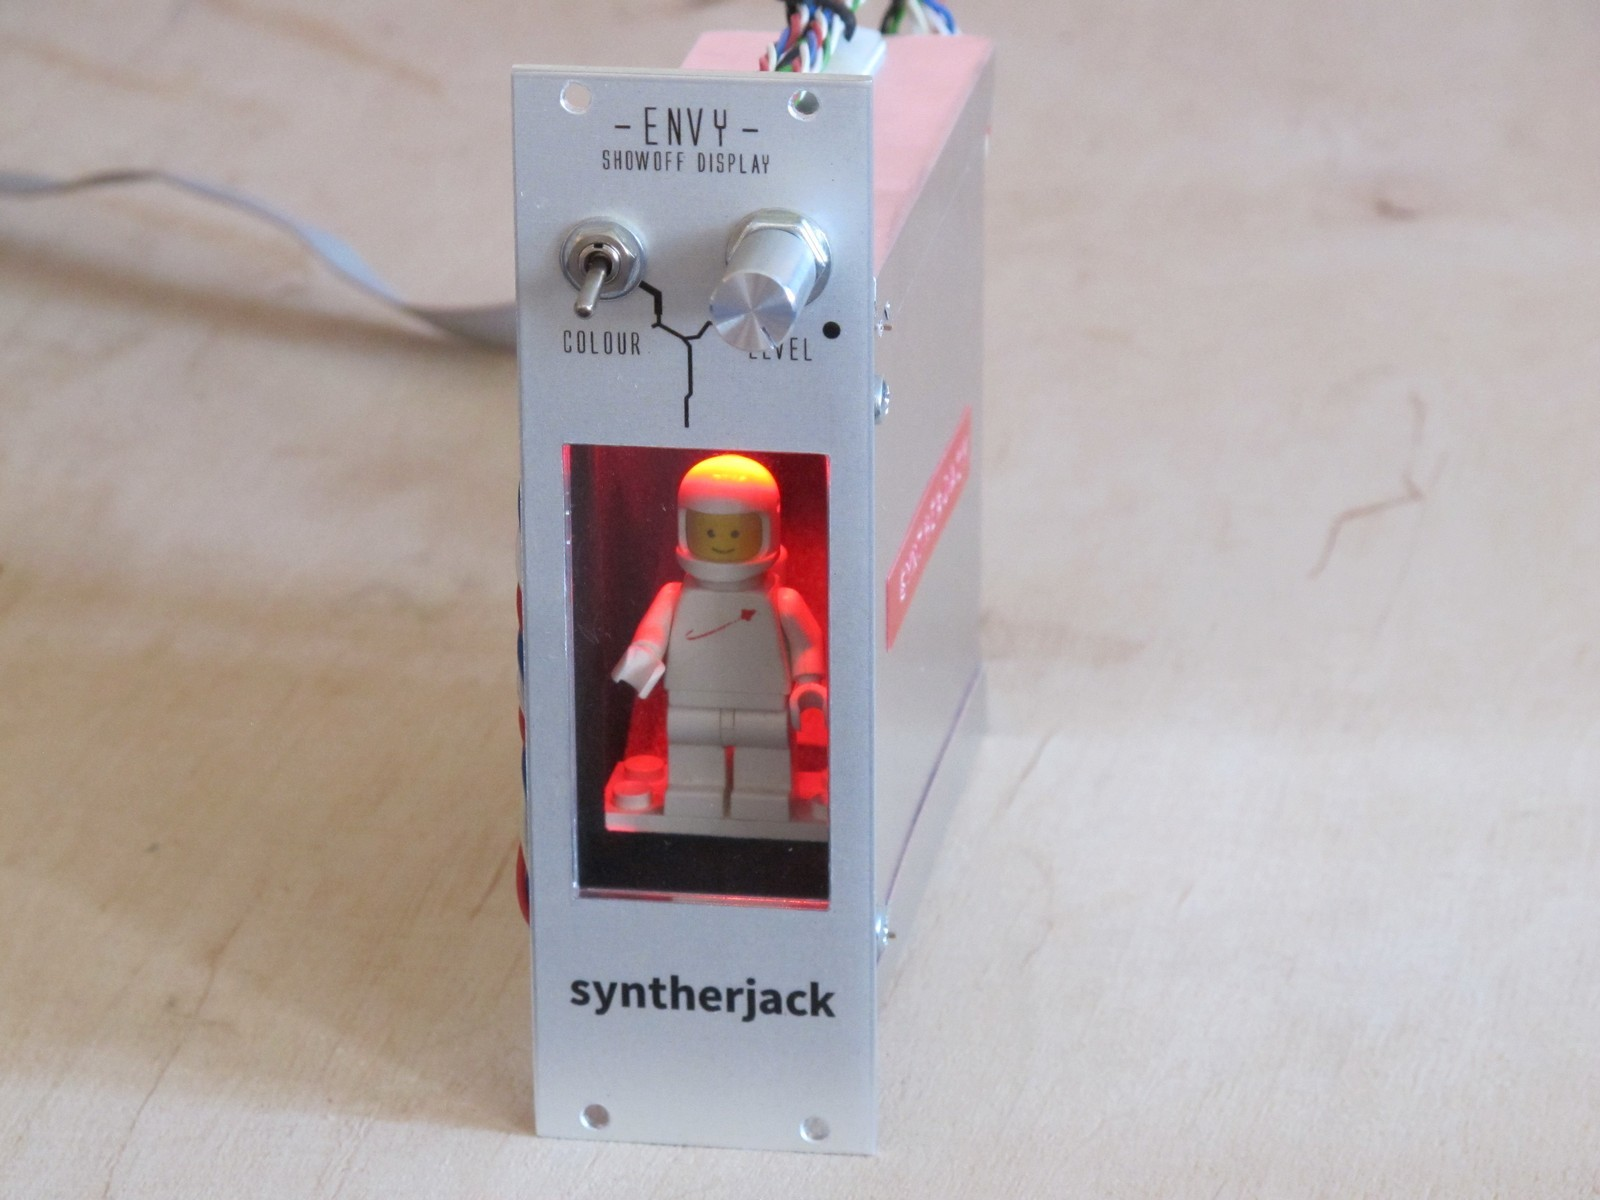 Finished ENVY LEGO eurorack module, front view